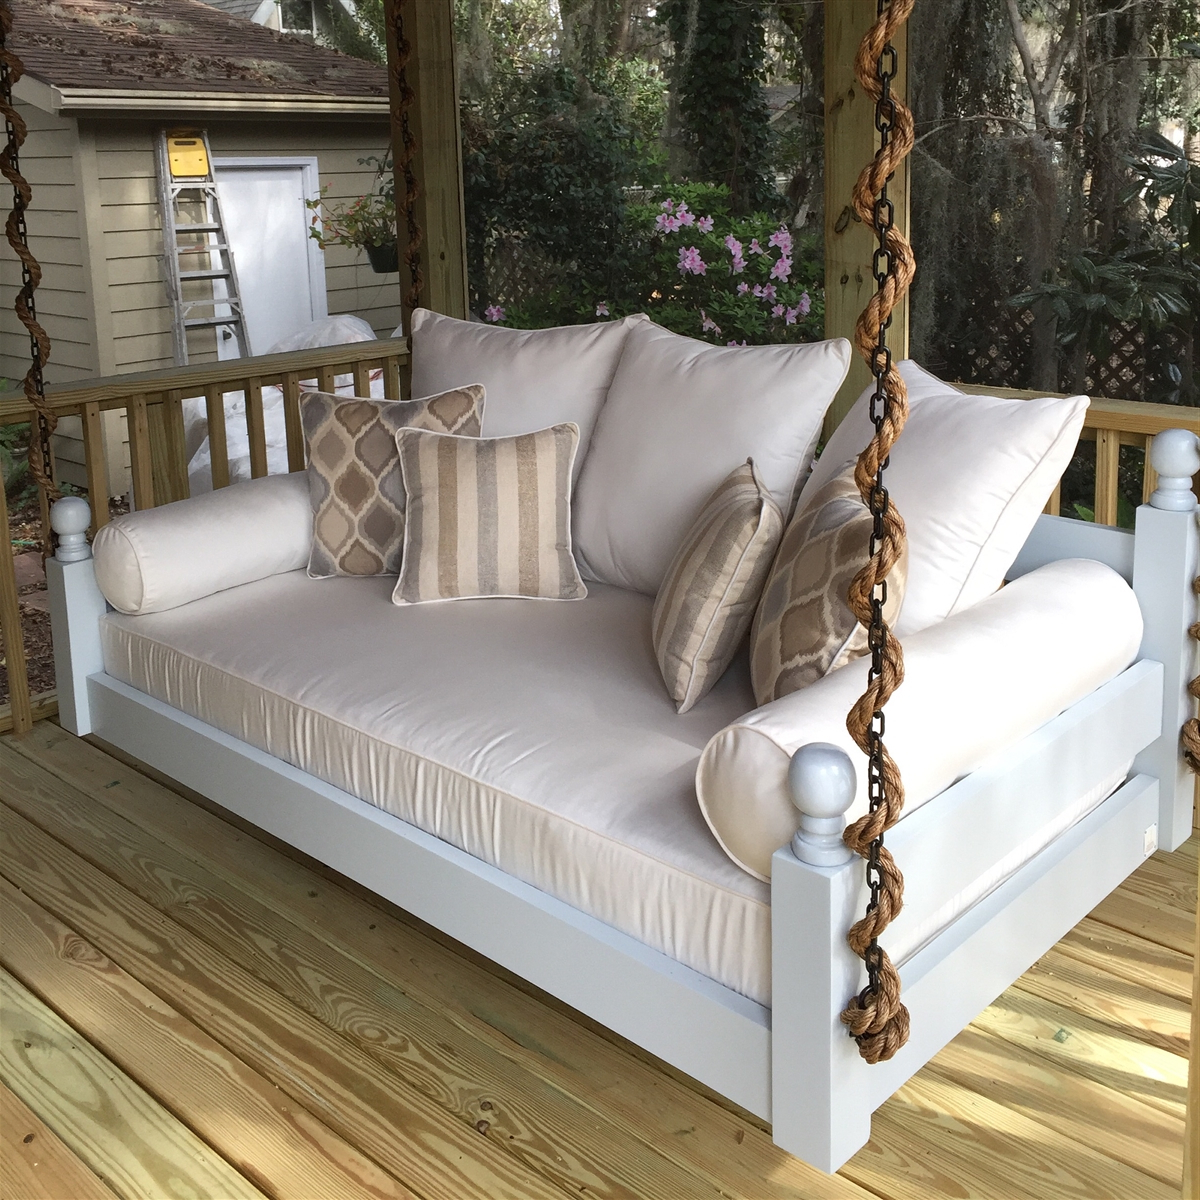 Most Current Country Style Hanging Daybed Swings With Pallet Outdoor Porch Bed — Indoor & Outdoor Decor : Outdoor (Gallery 29 of 30)